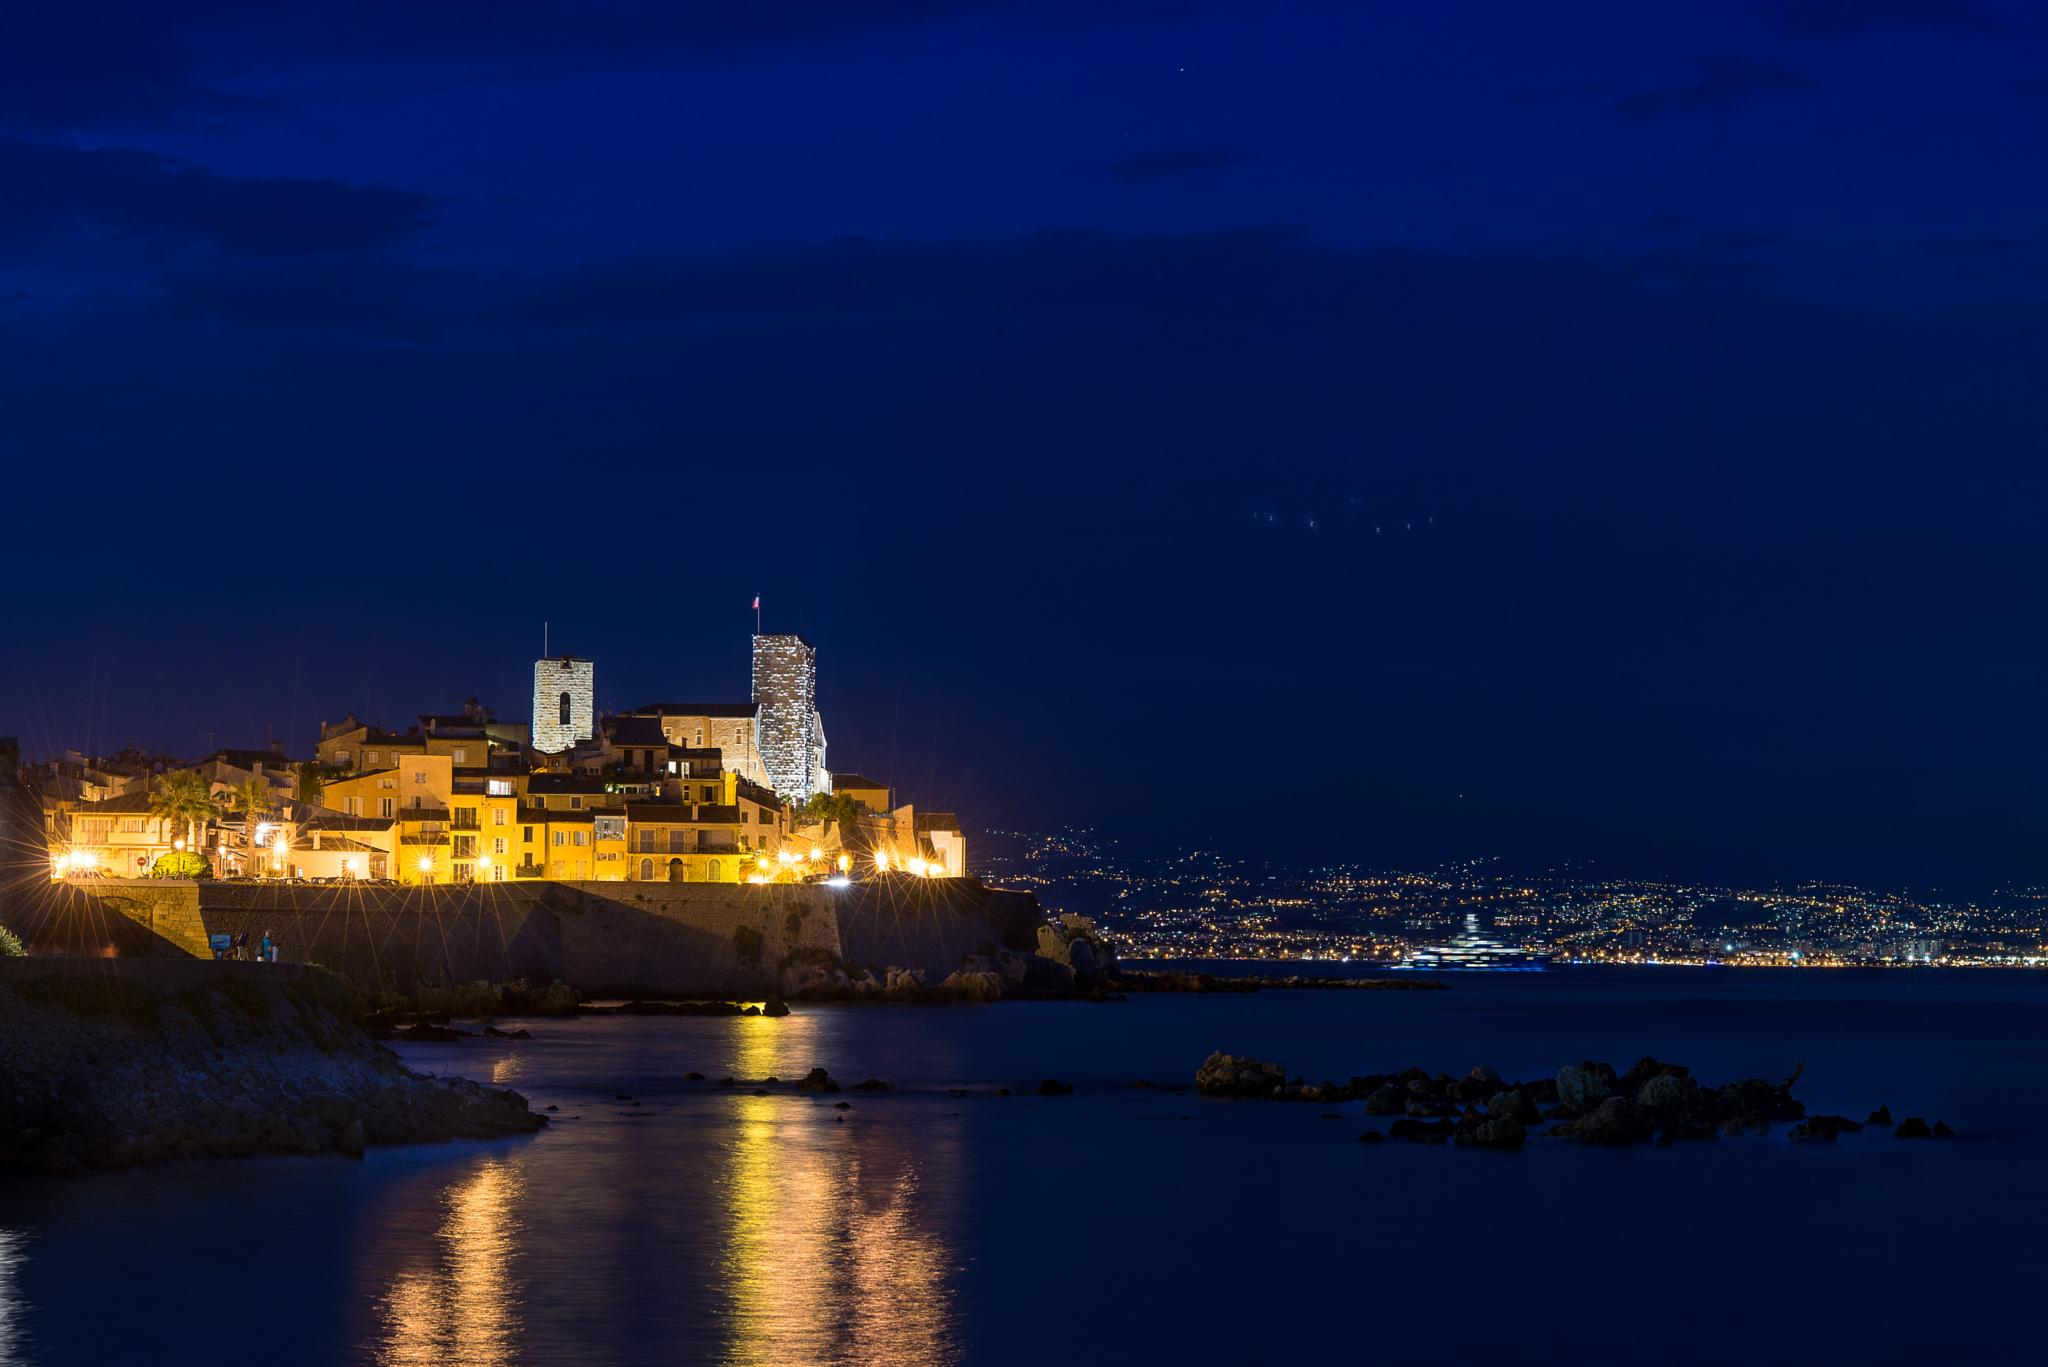 Antibes, France by Niklas Olausson